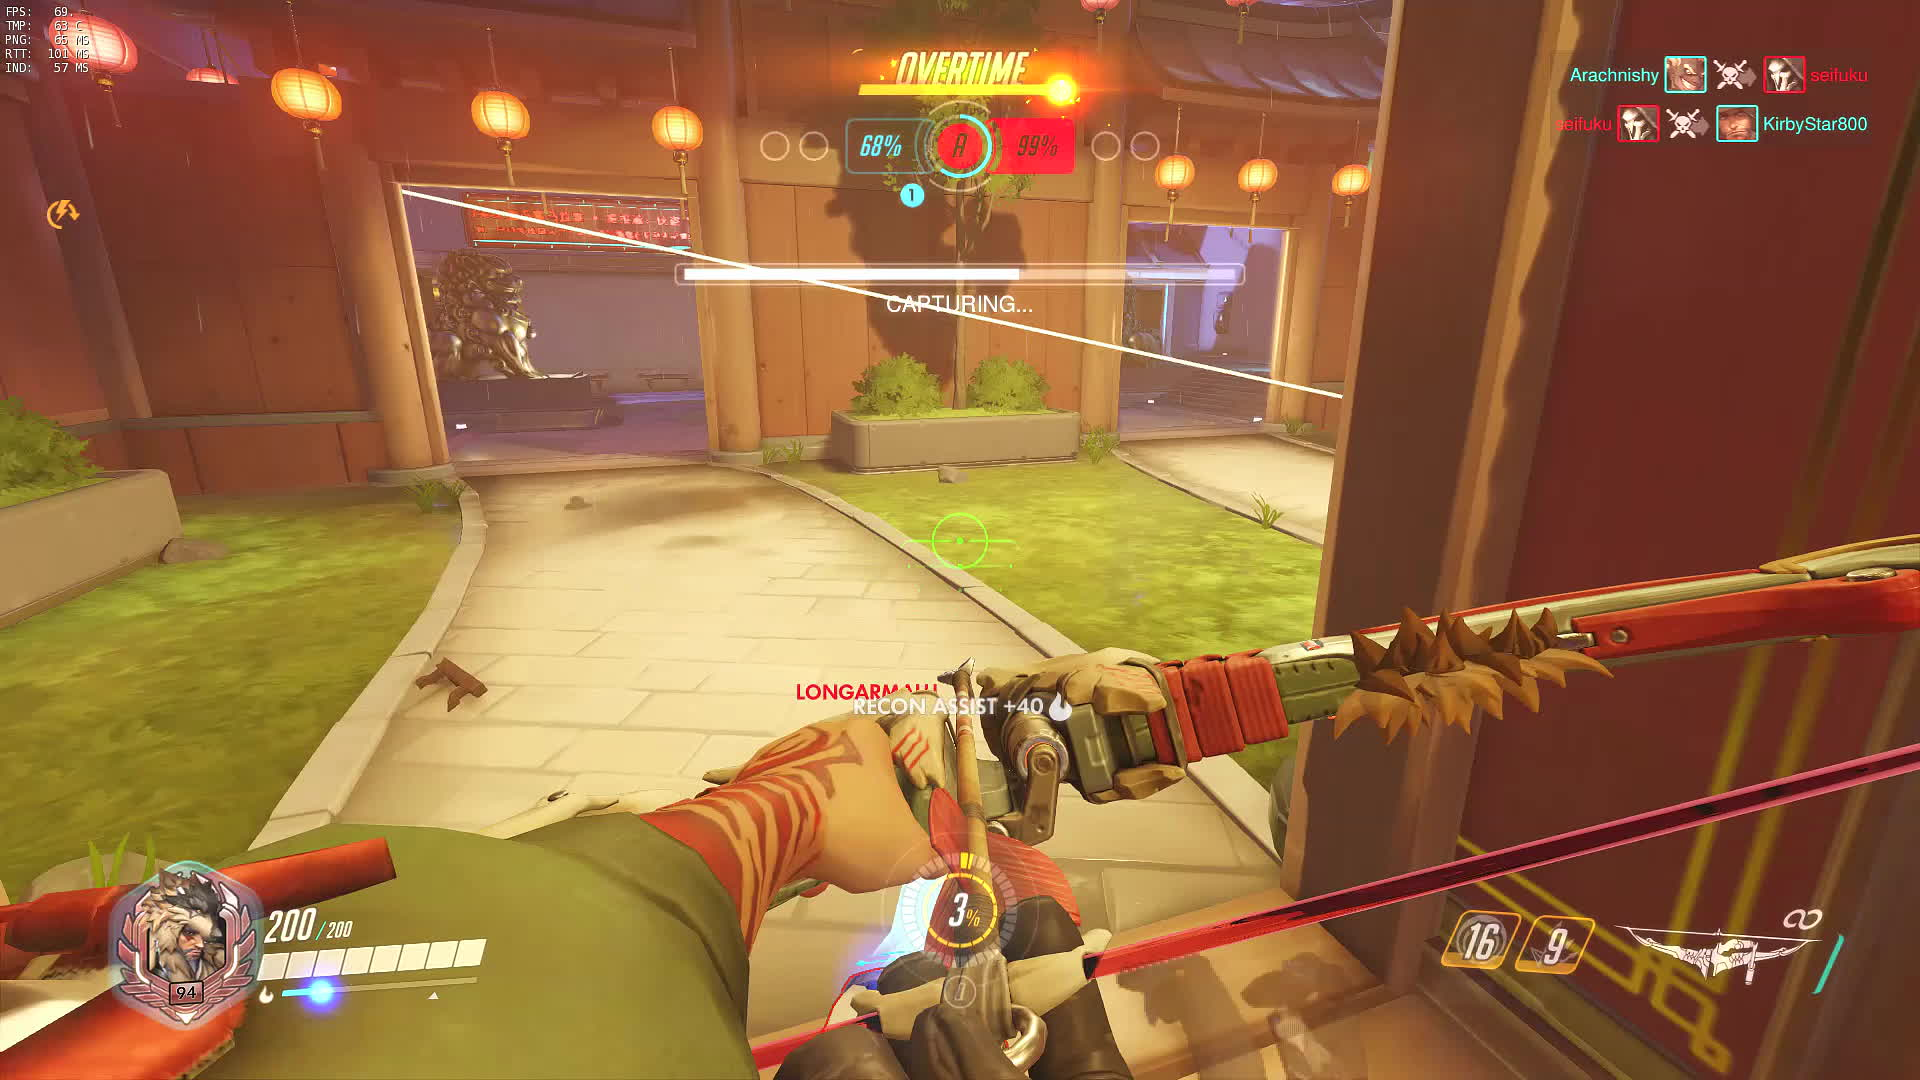 60fpsgaminggifs, overwatch, Playing the Objective: Hanzo GIFs